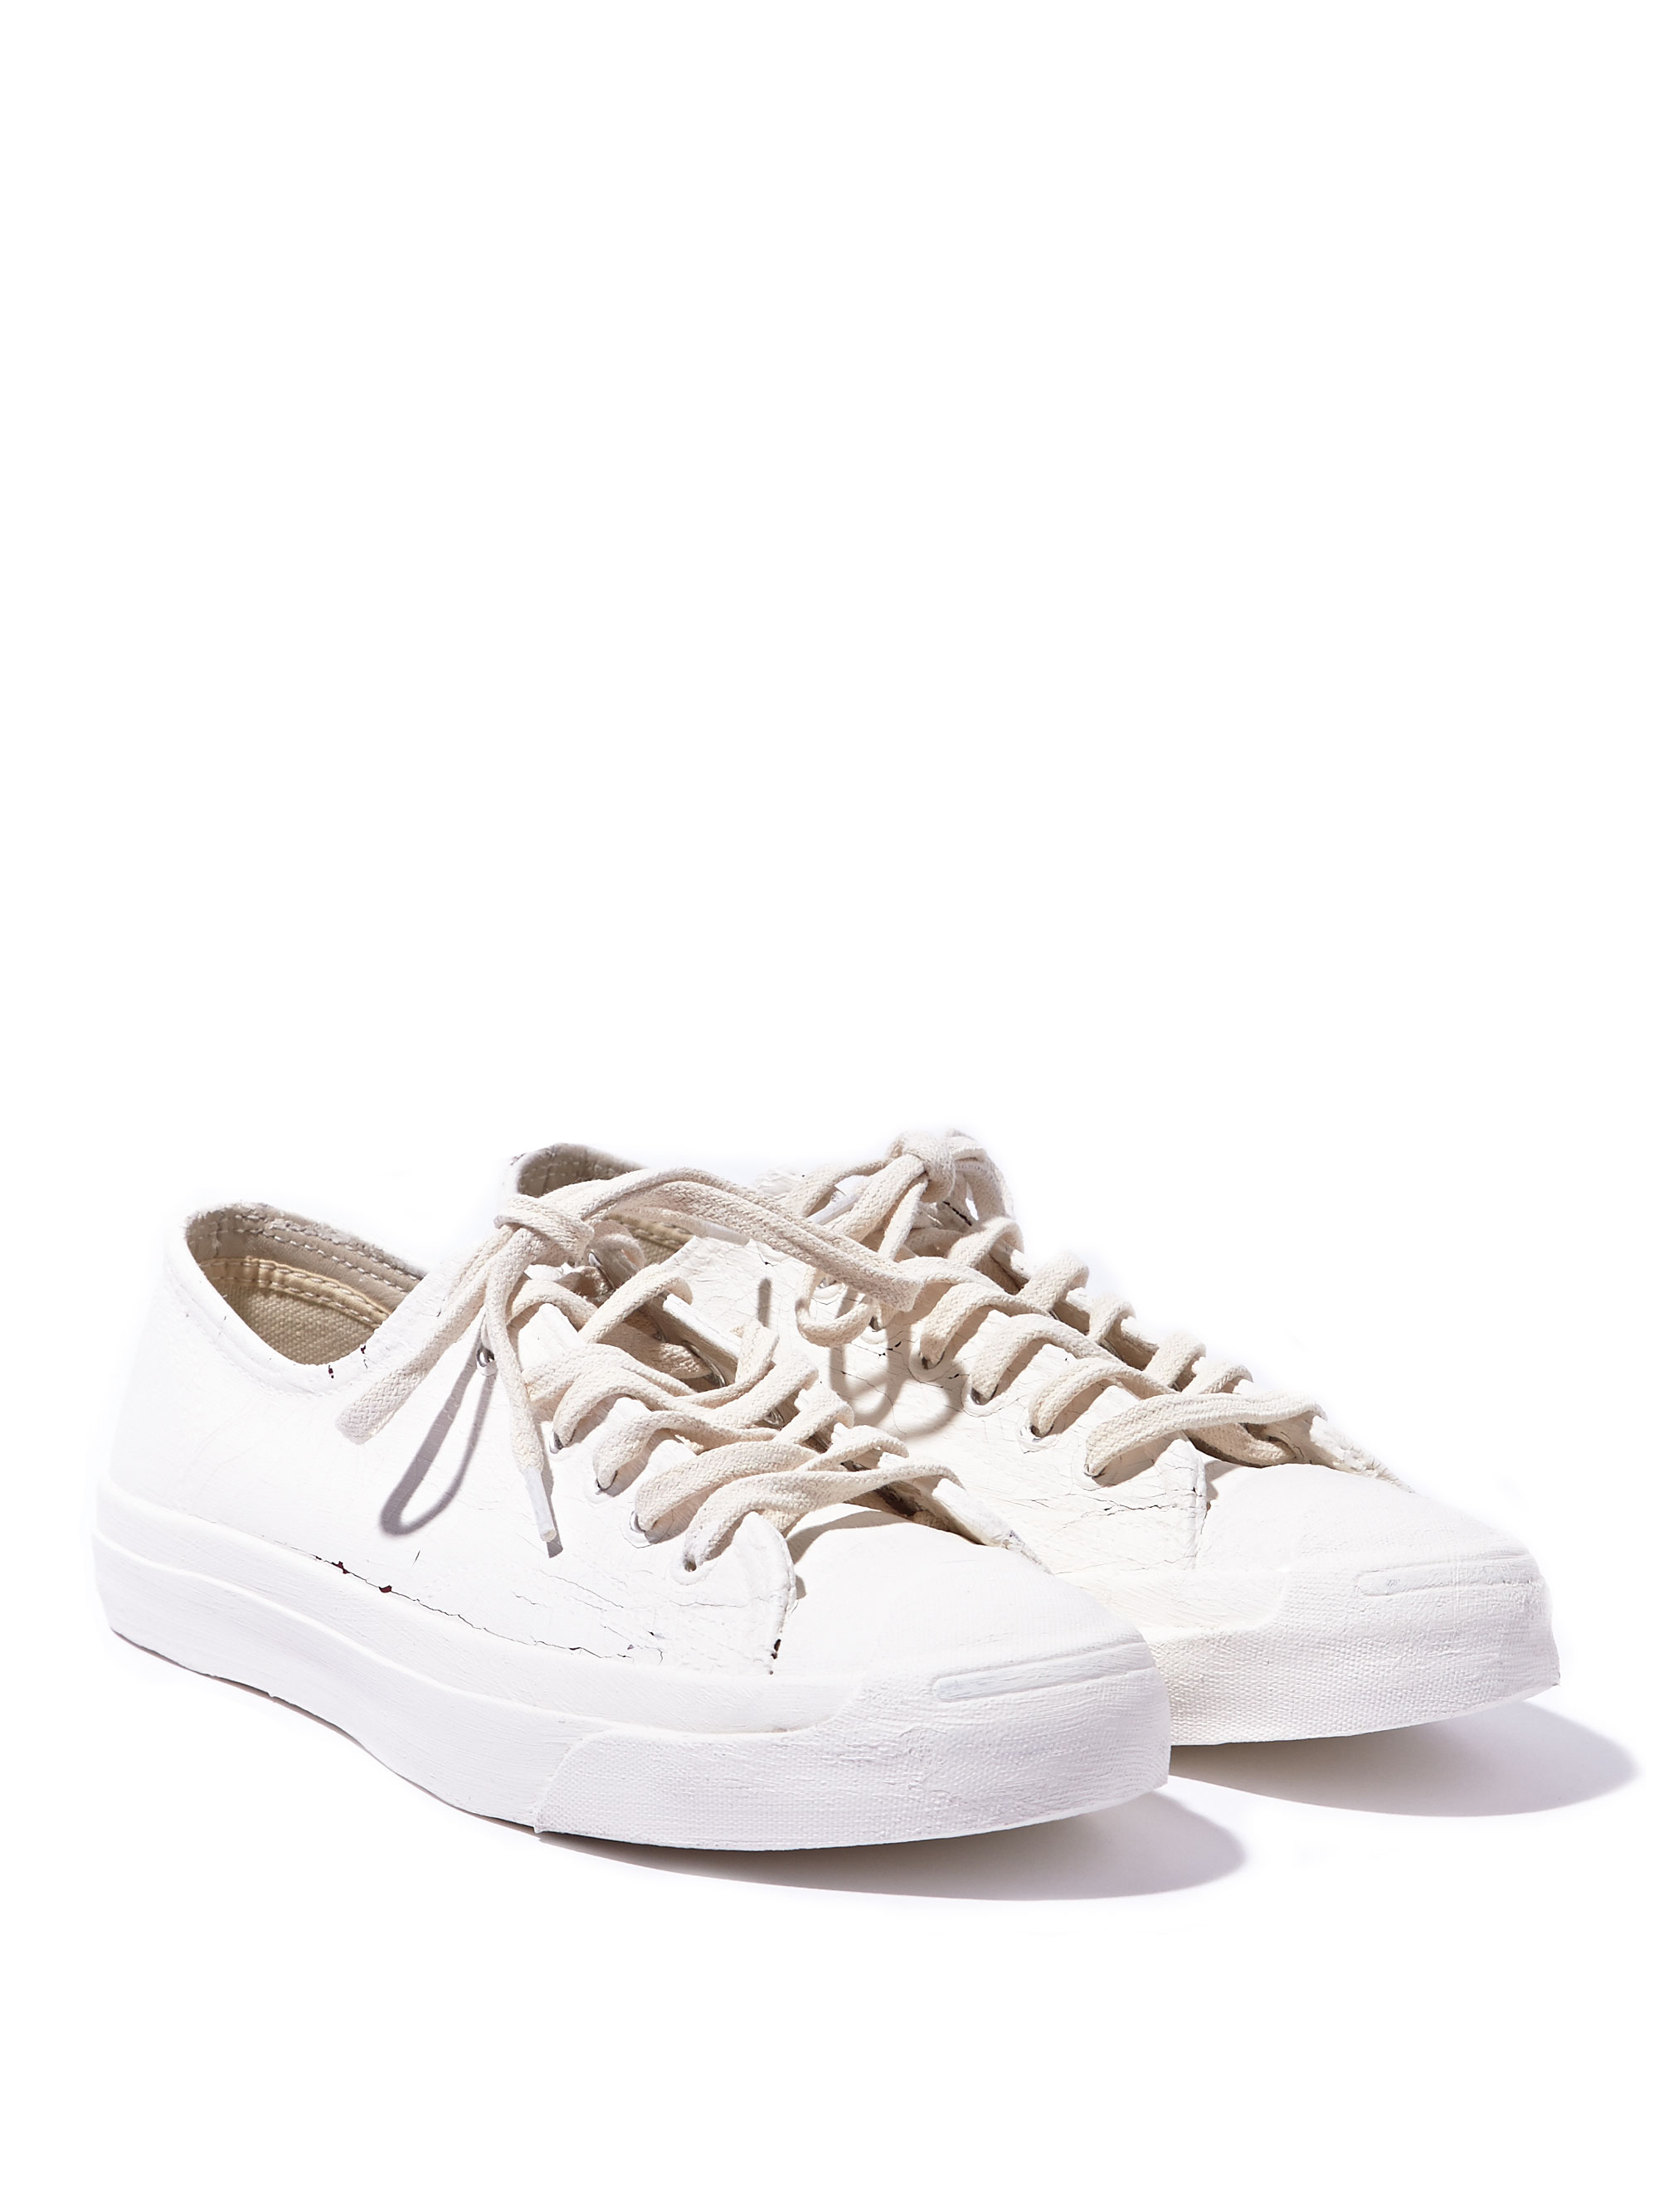 Discussion on this topic: Converse x Maison Martin Margiela, converse-x-maison-martin-margiela/